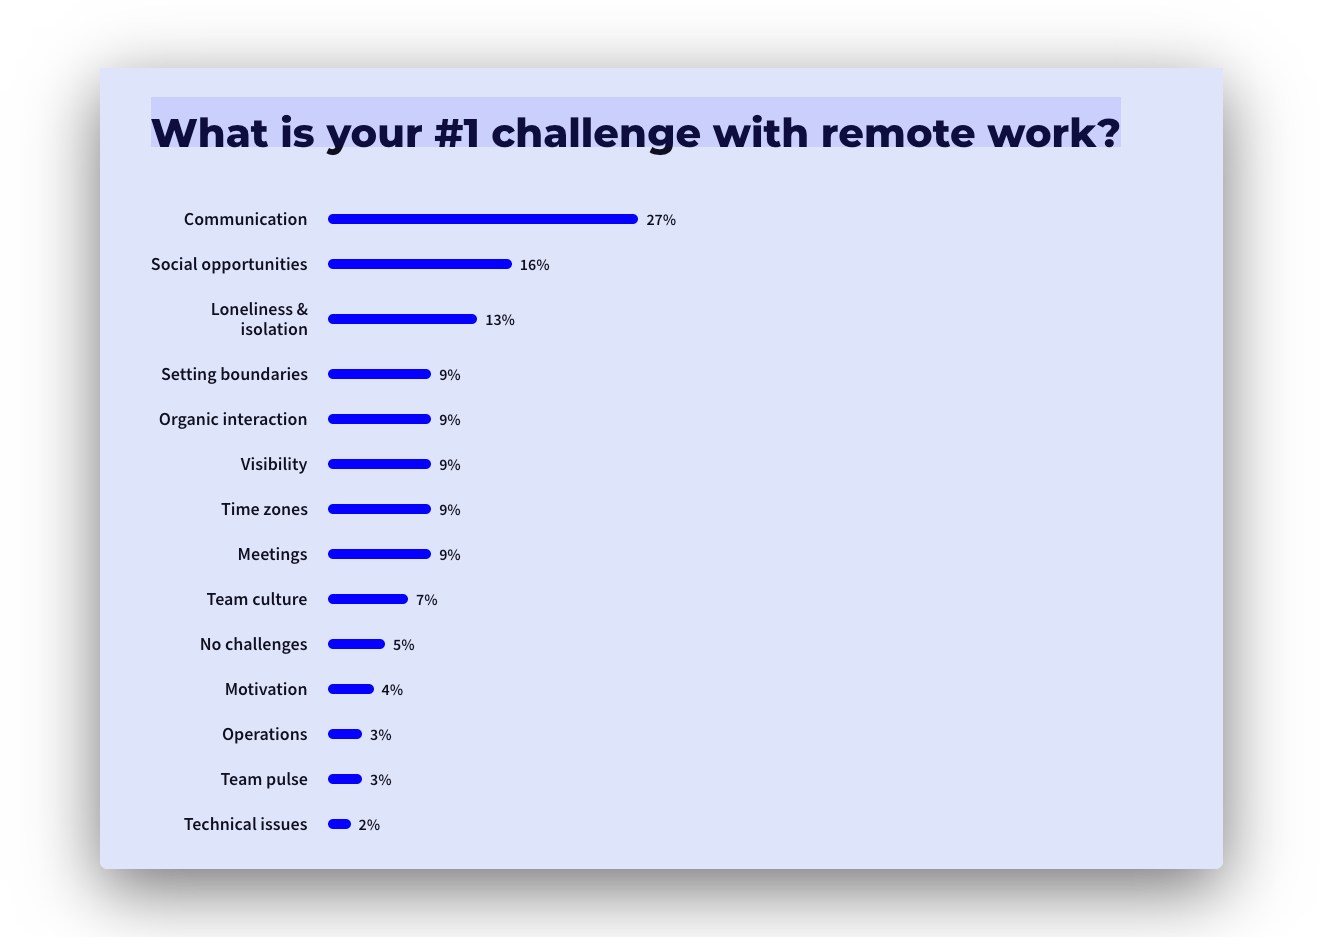 data showing communication is the #1 remote challenge